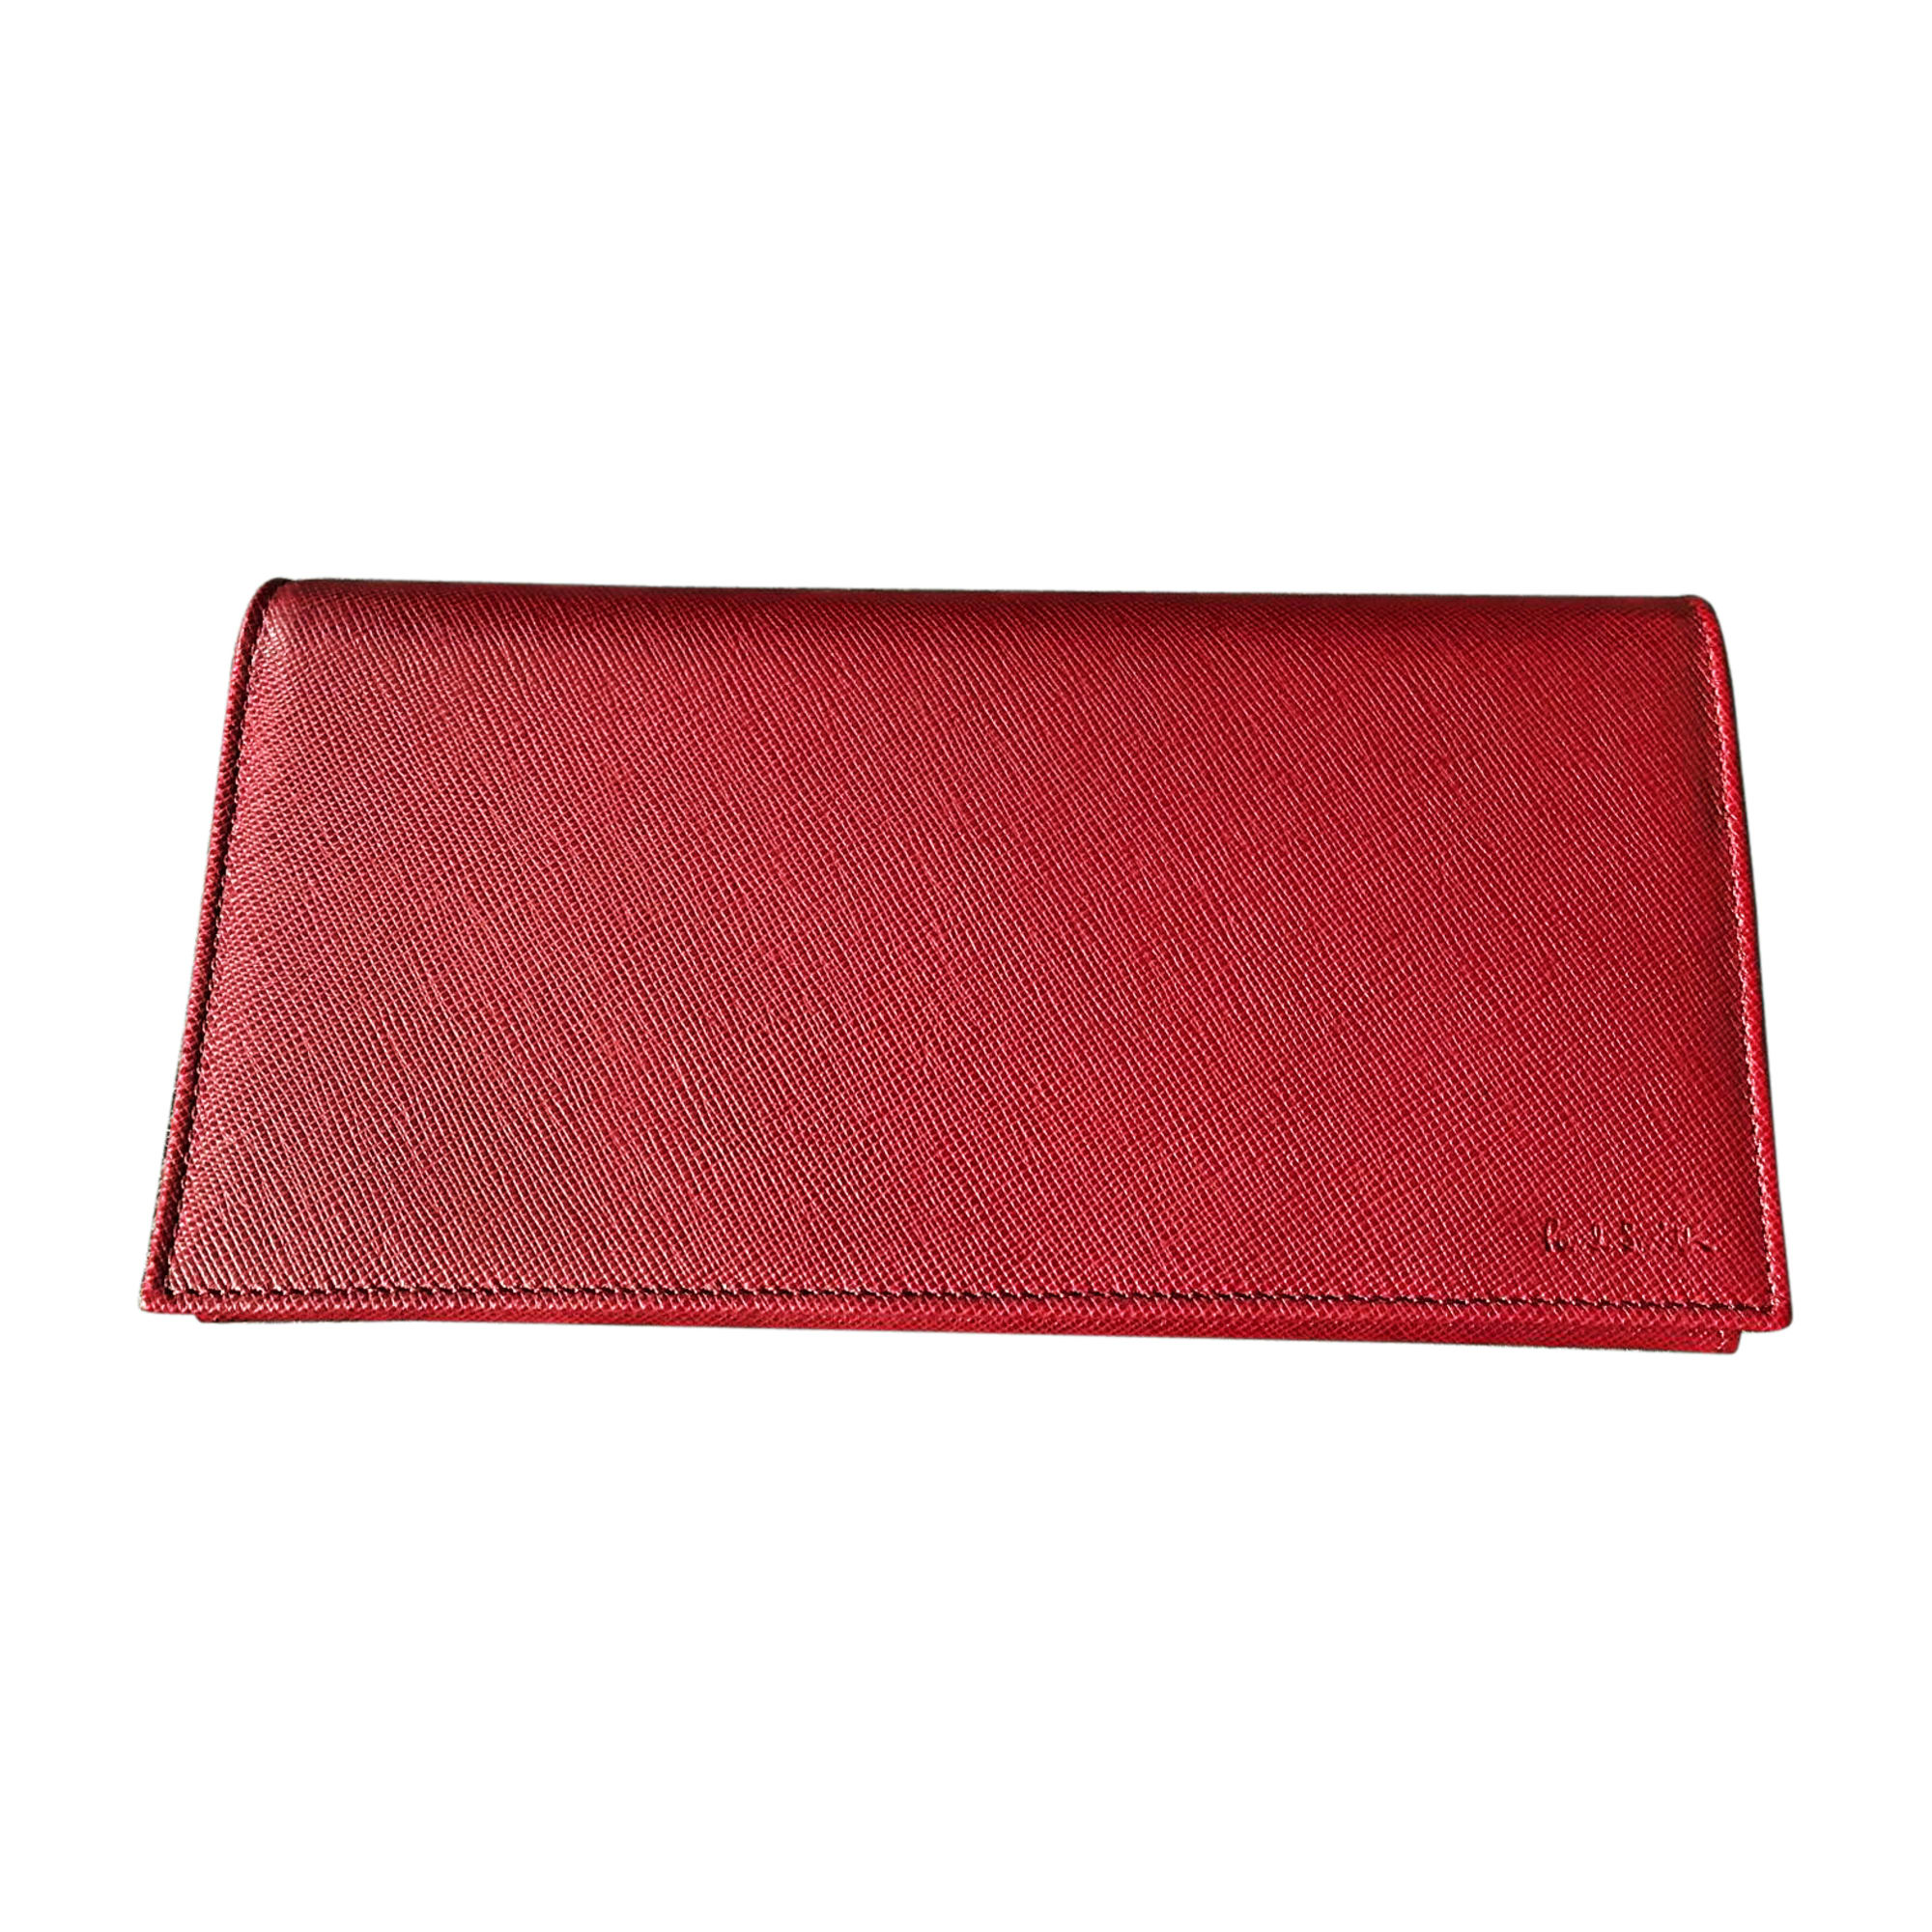 Portefeuille PAUL SMITH Rouge, bordeaux